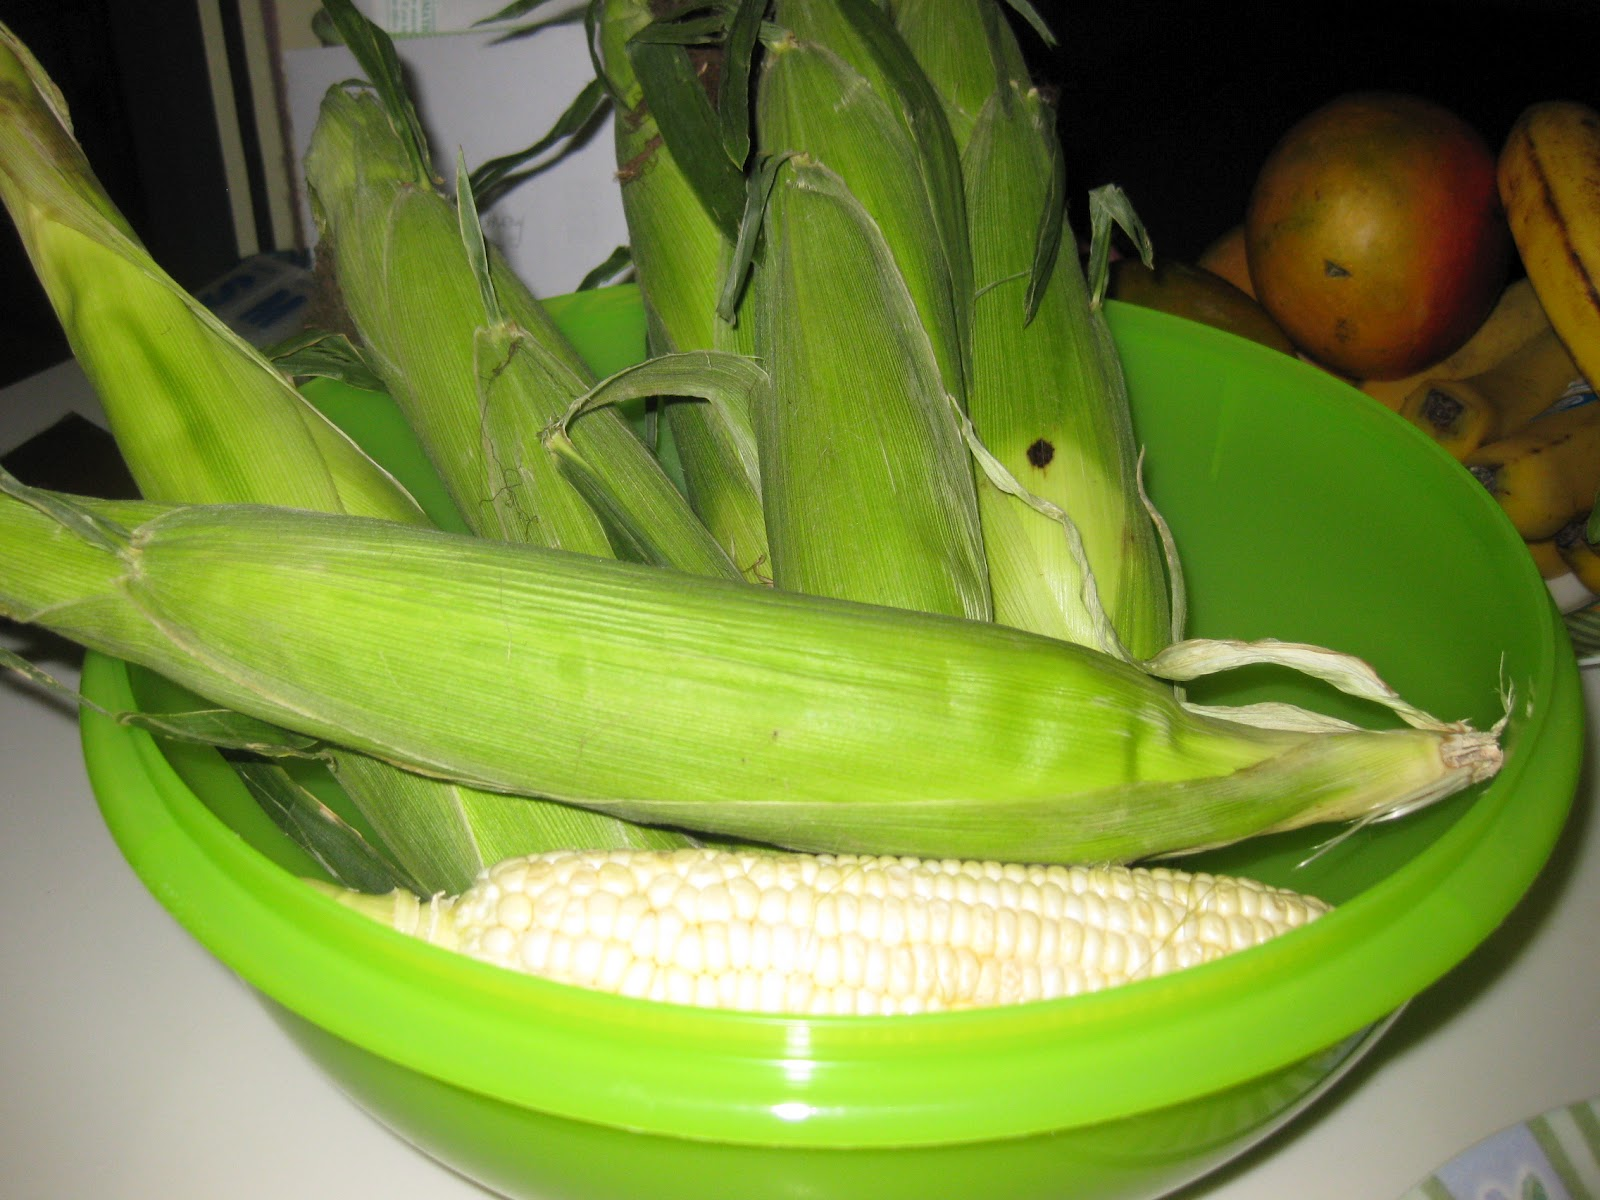 corn on the cob in its own jacket in a bowl